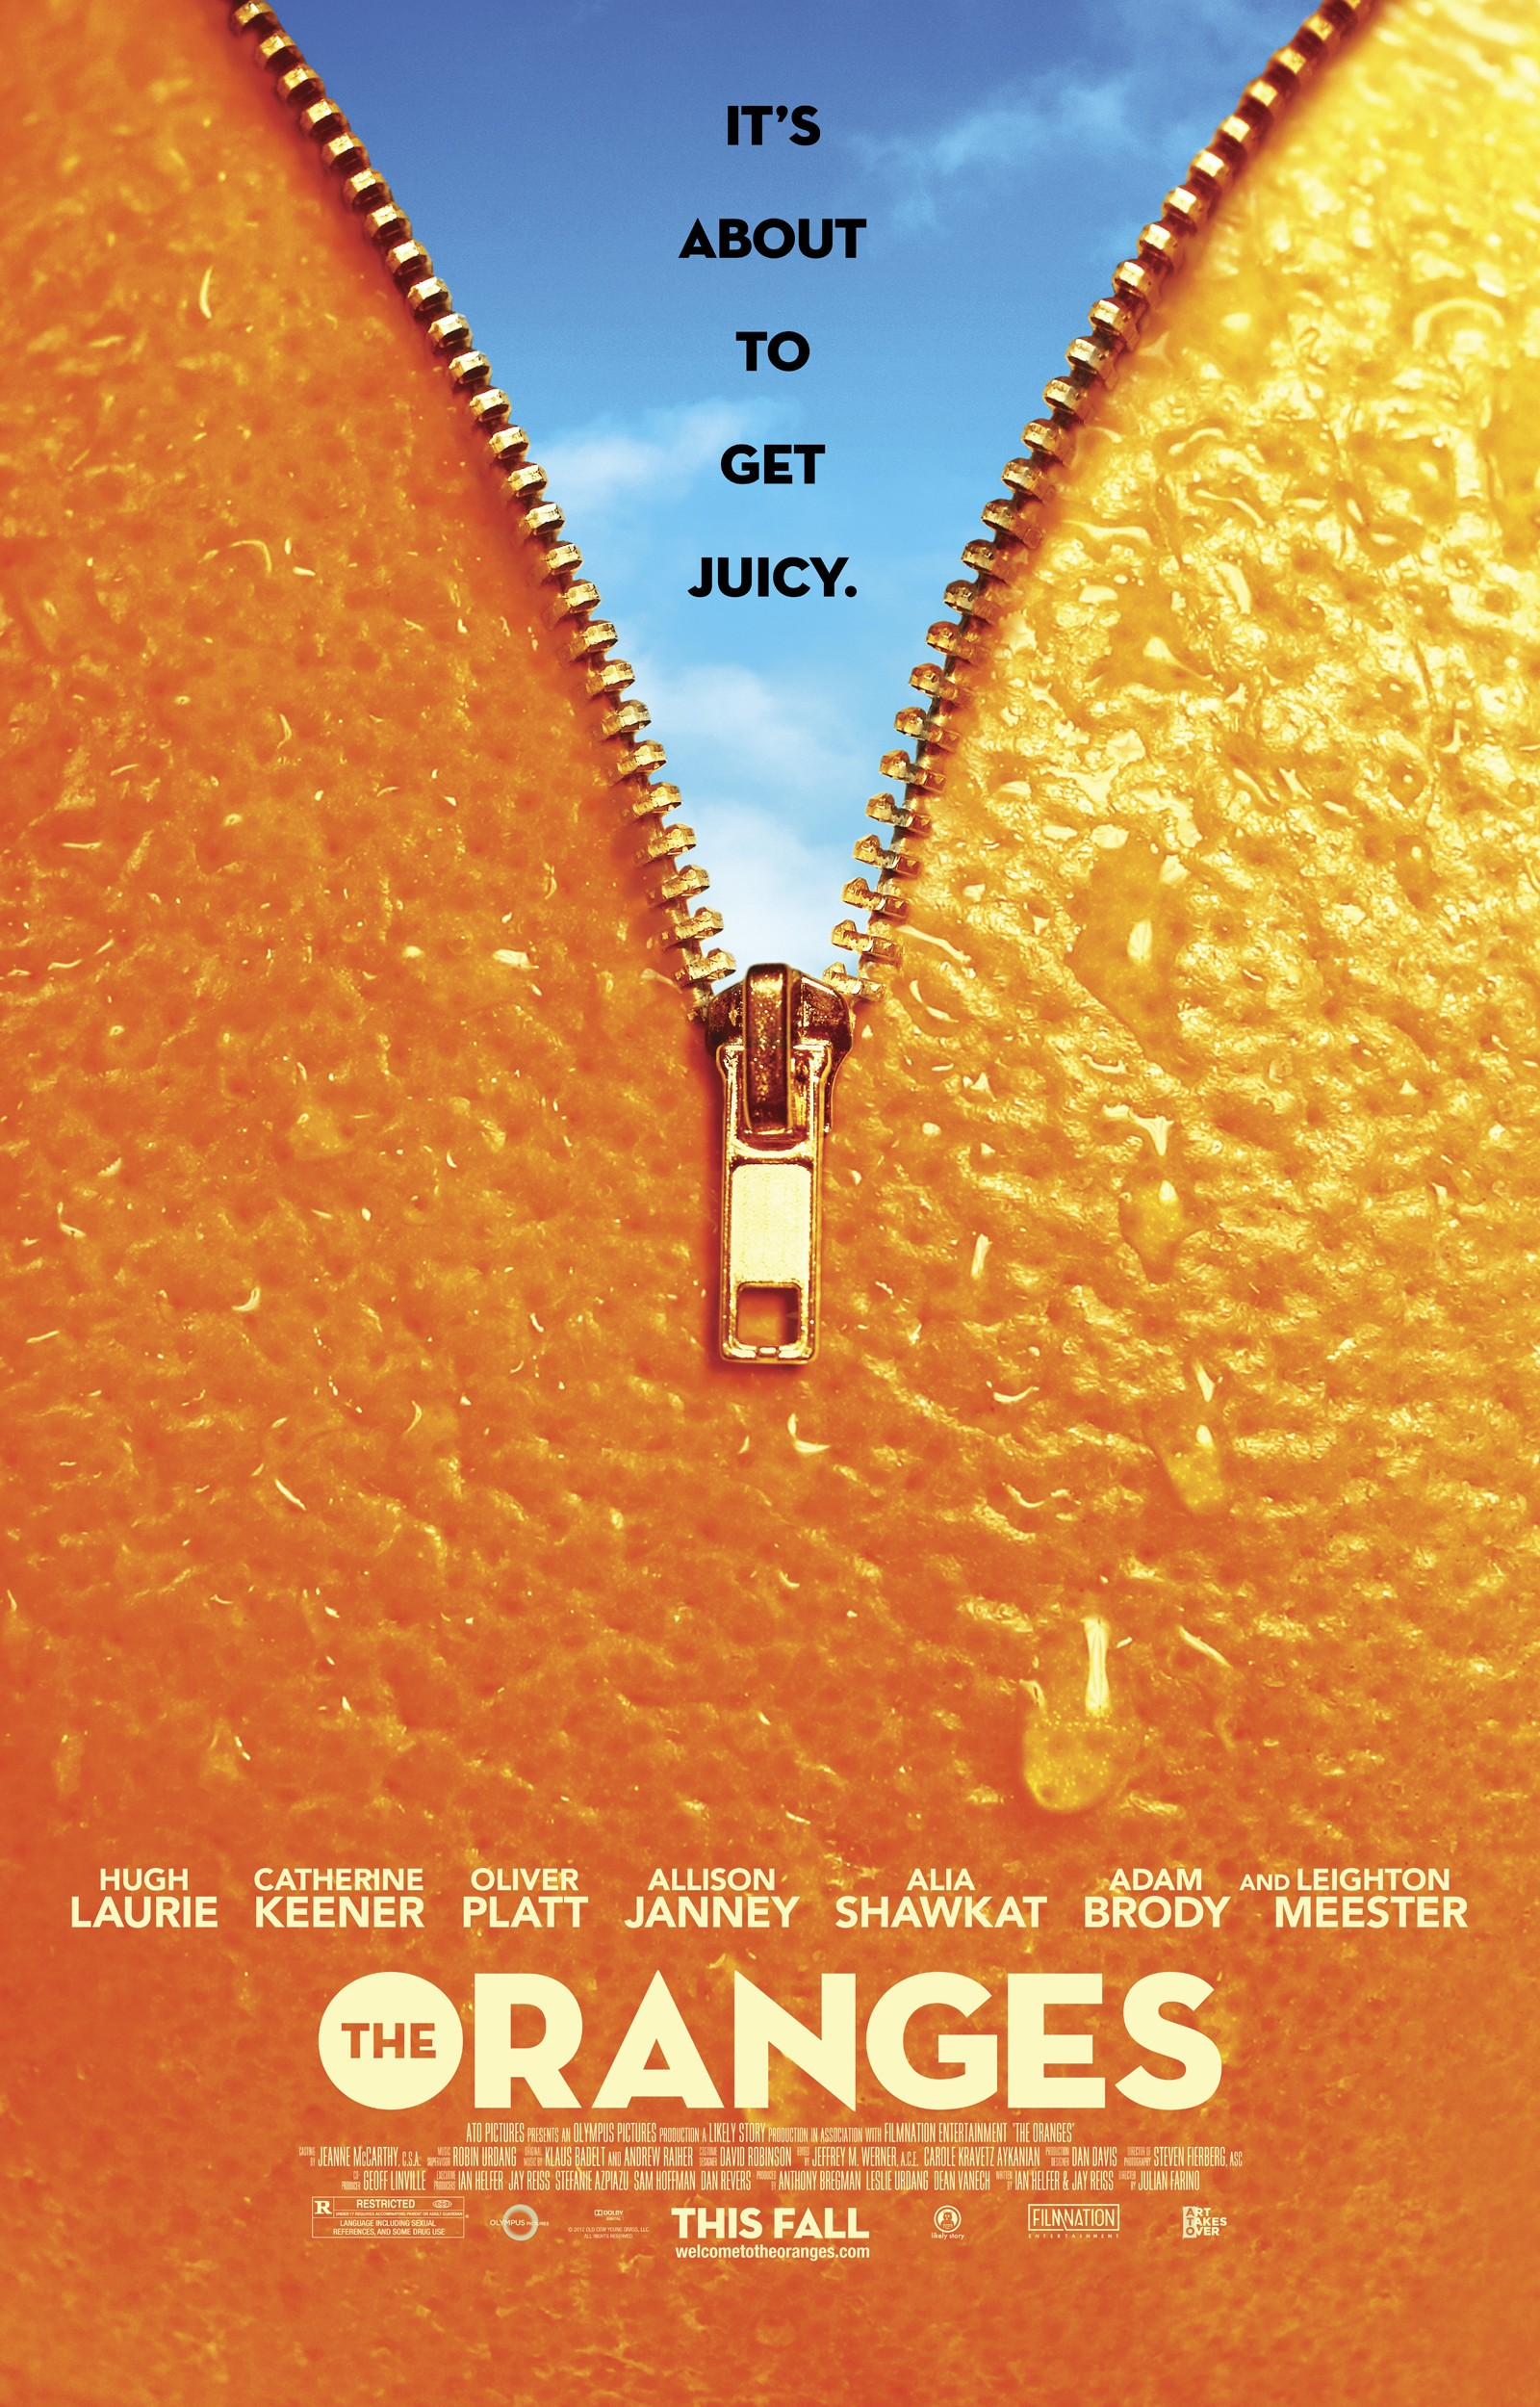 Hugh laurie hugh laurie the oranges official movie poster